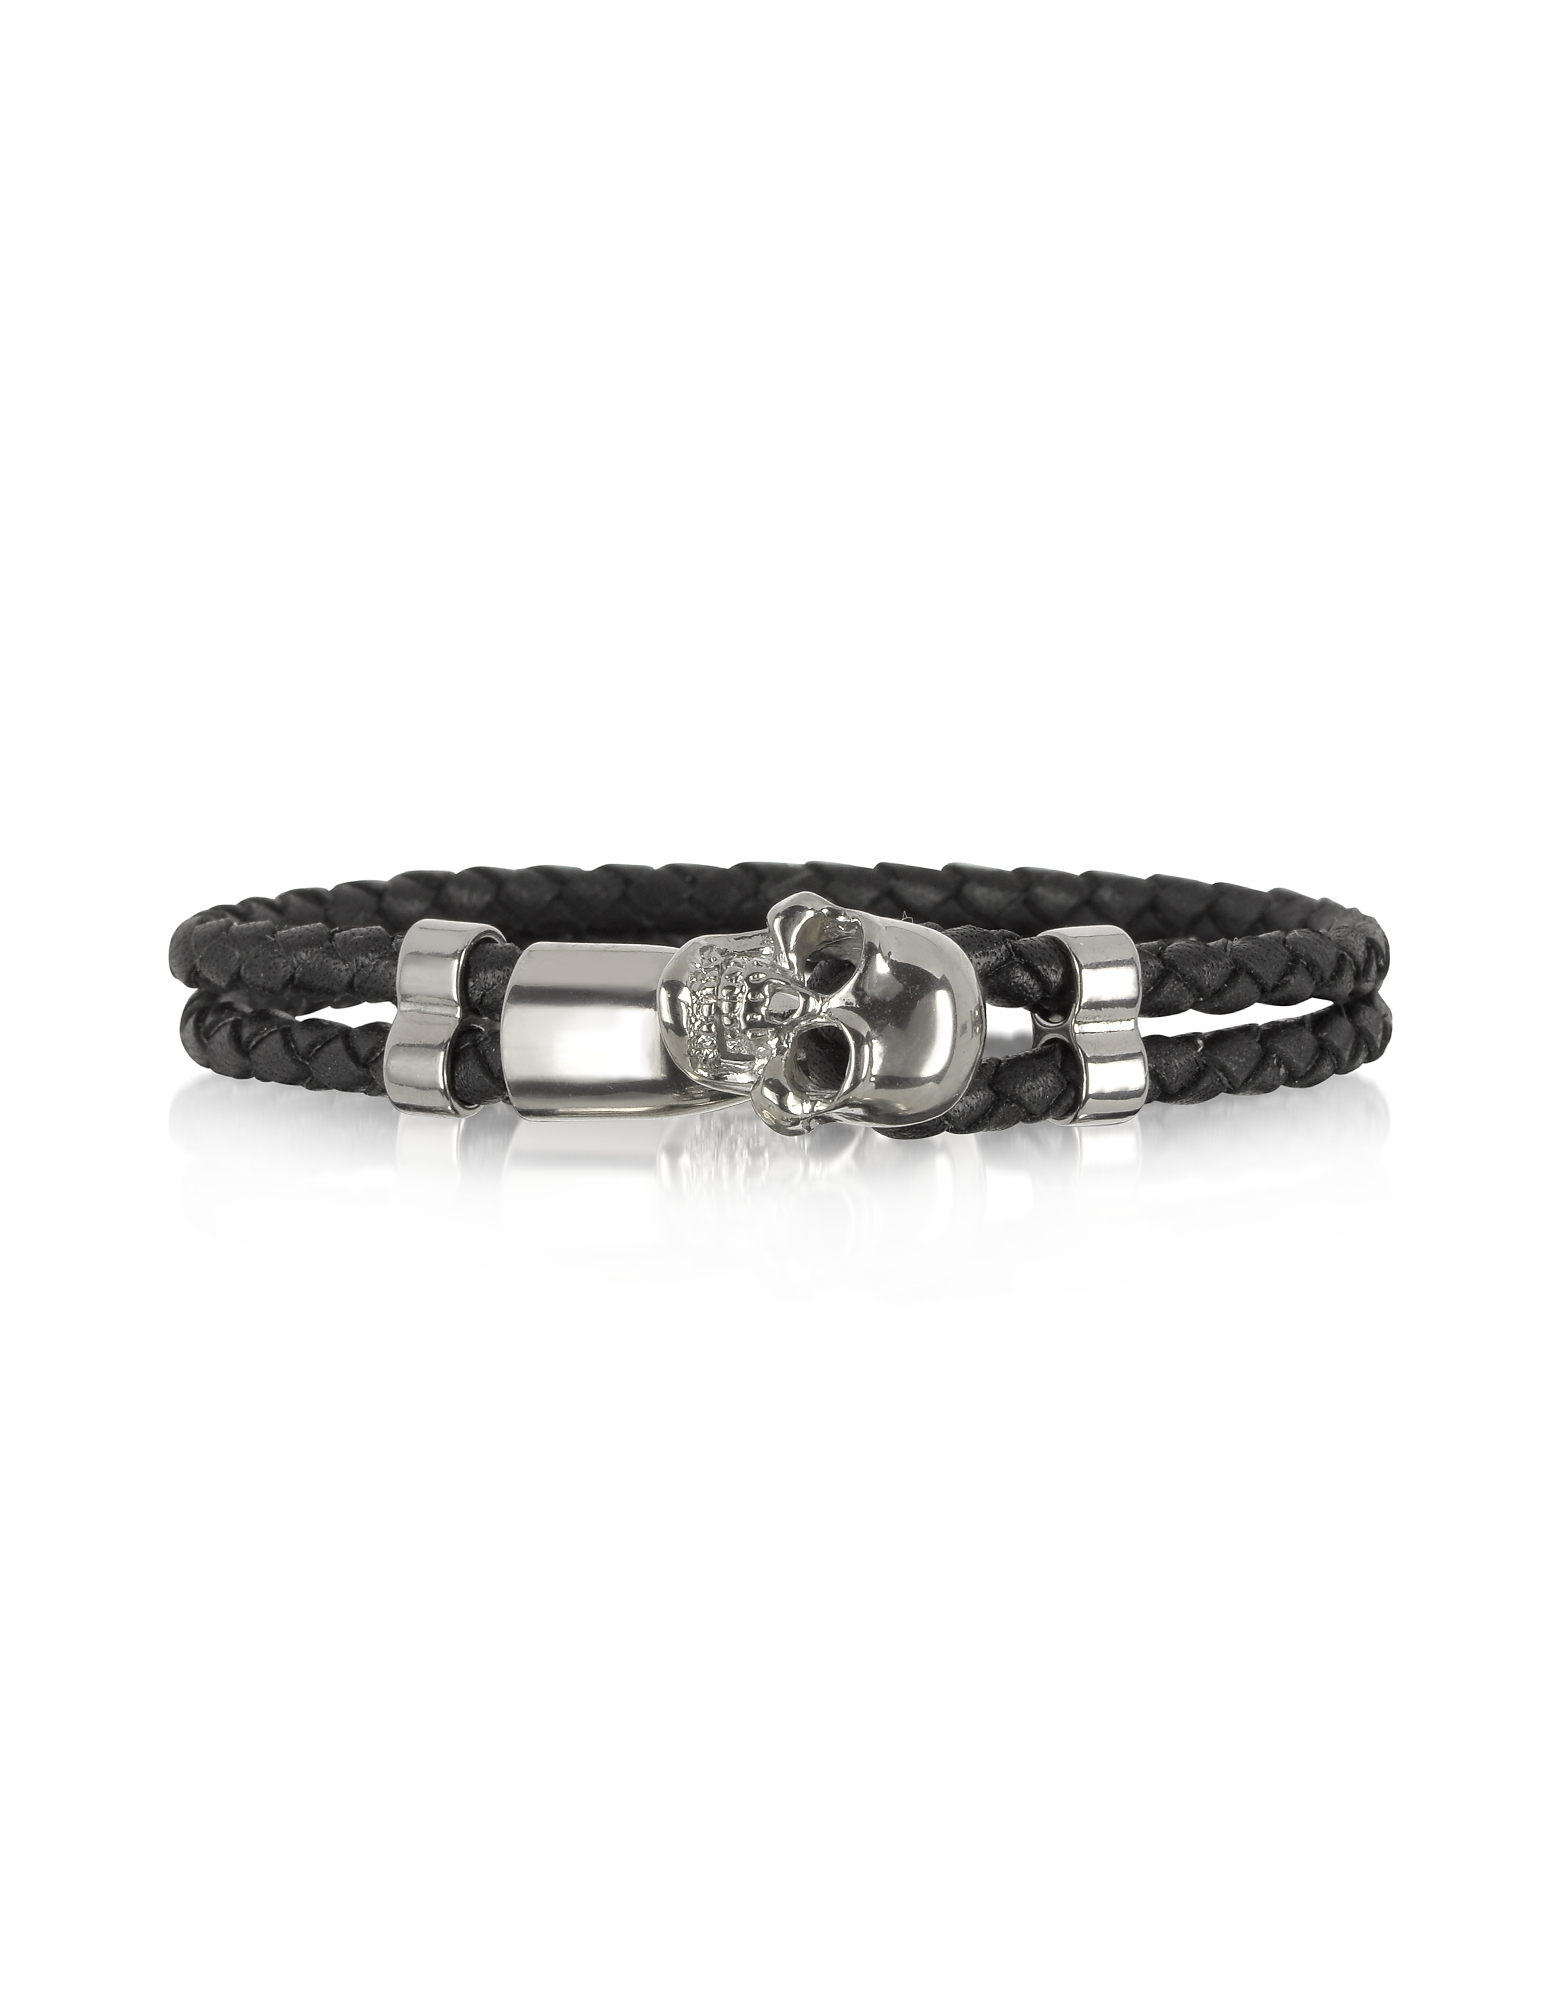 Skull Silver Tone Brass and Leather Men's Bracelet